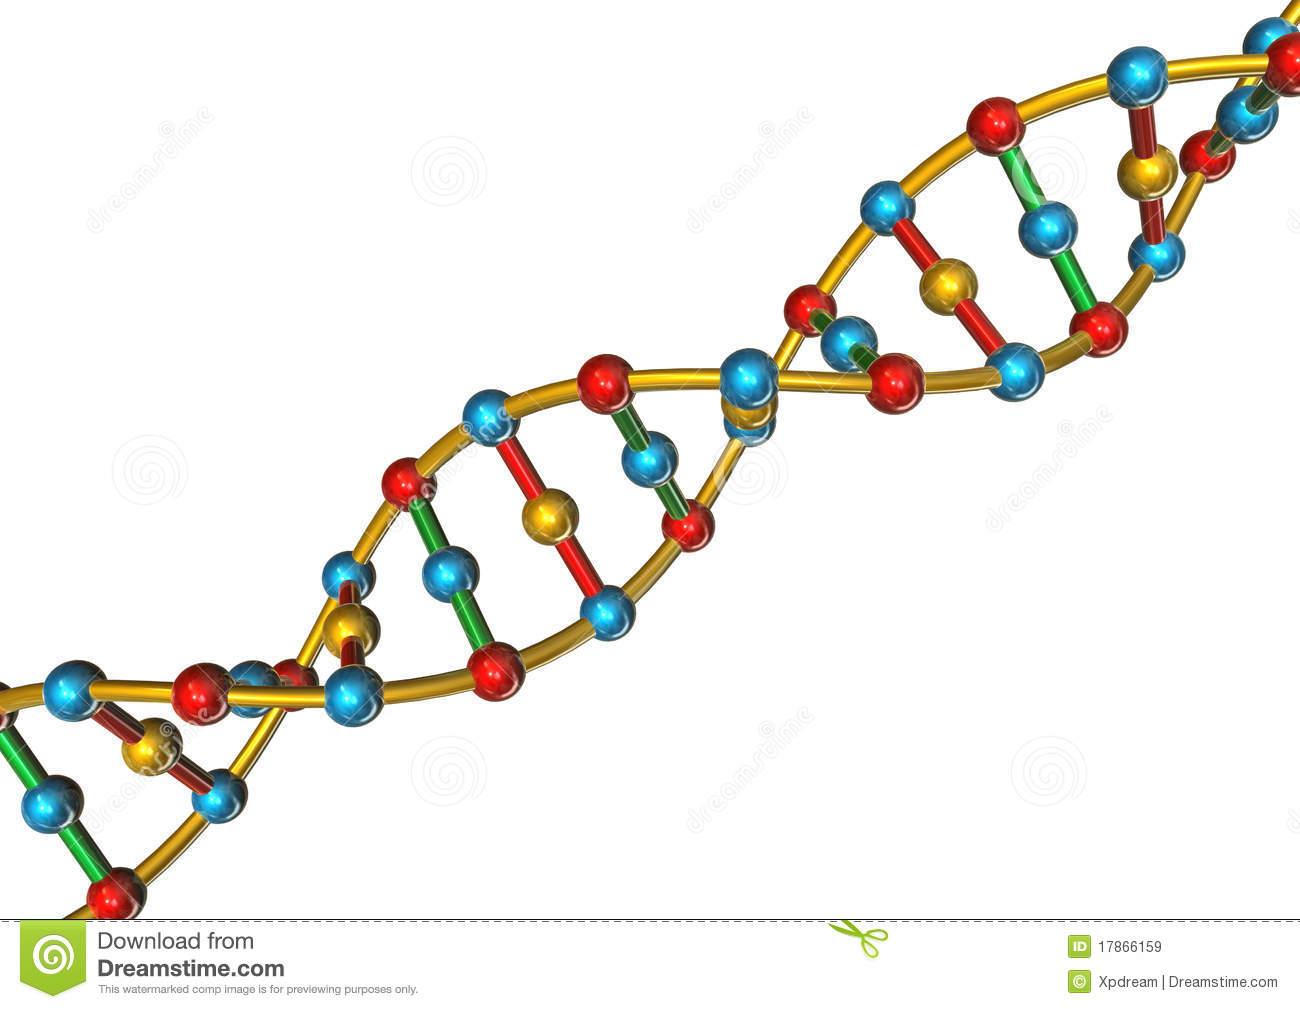 Simple dna strand clipart collection.